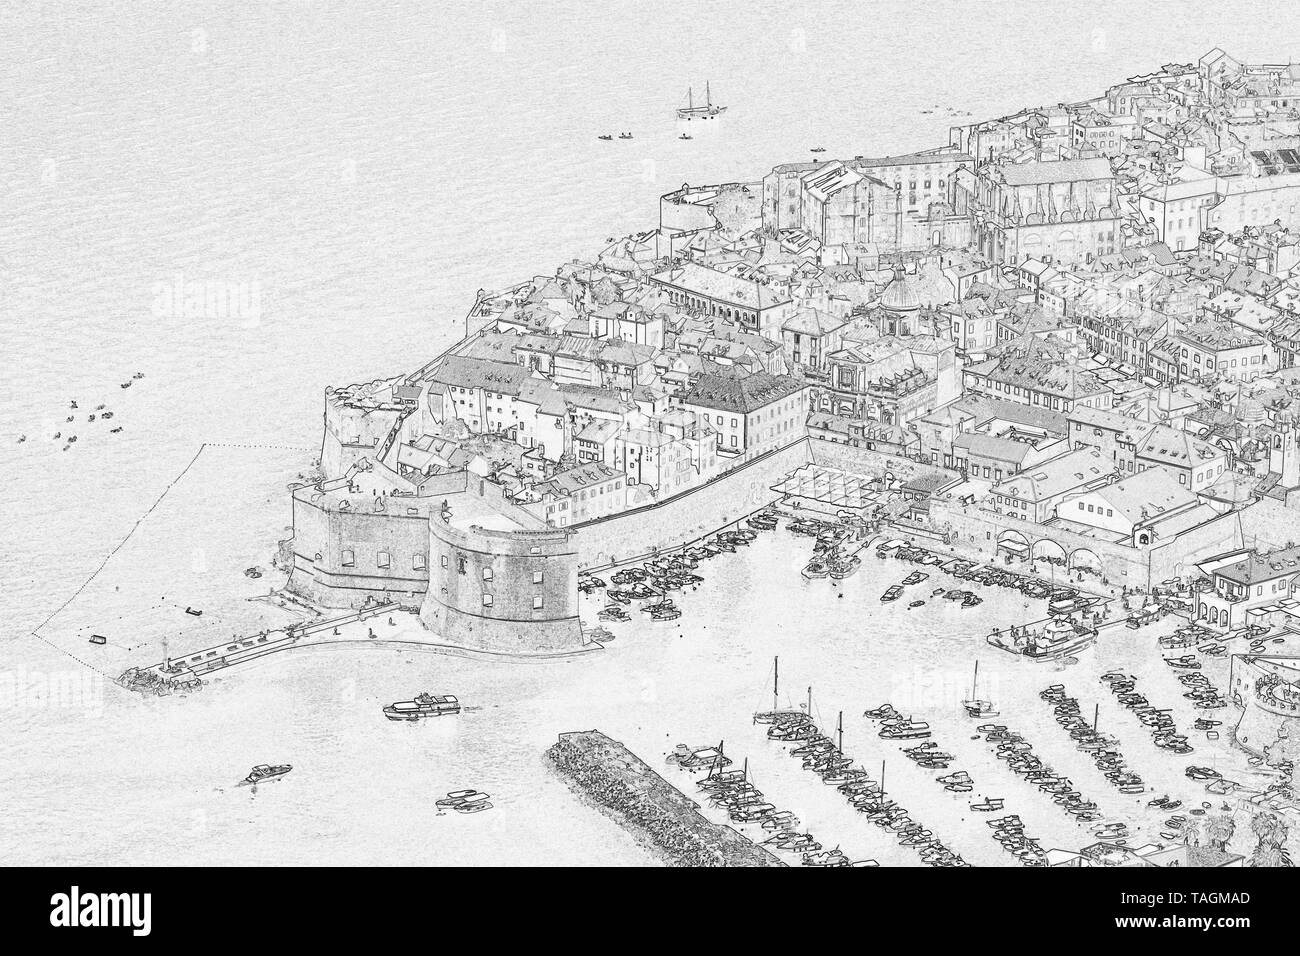 Aerial view of The Old Town of Dubrovnik, Croatia, edit with trace contour filter - Stock Image